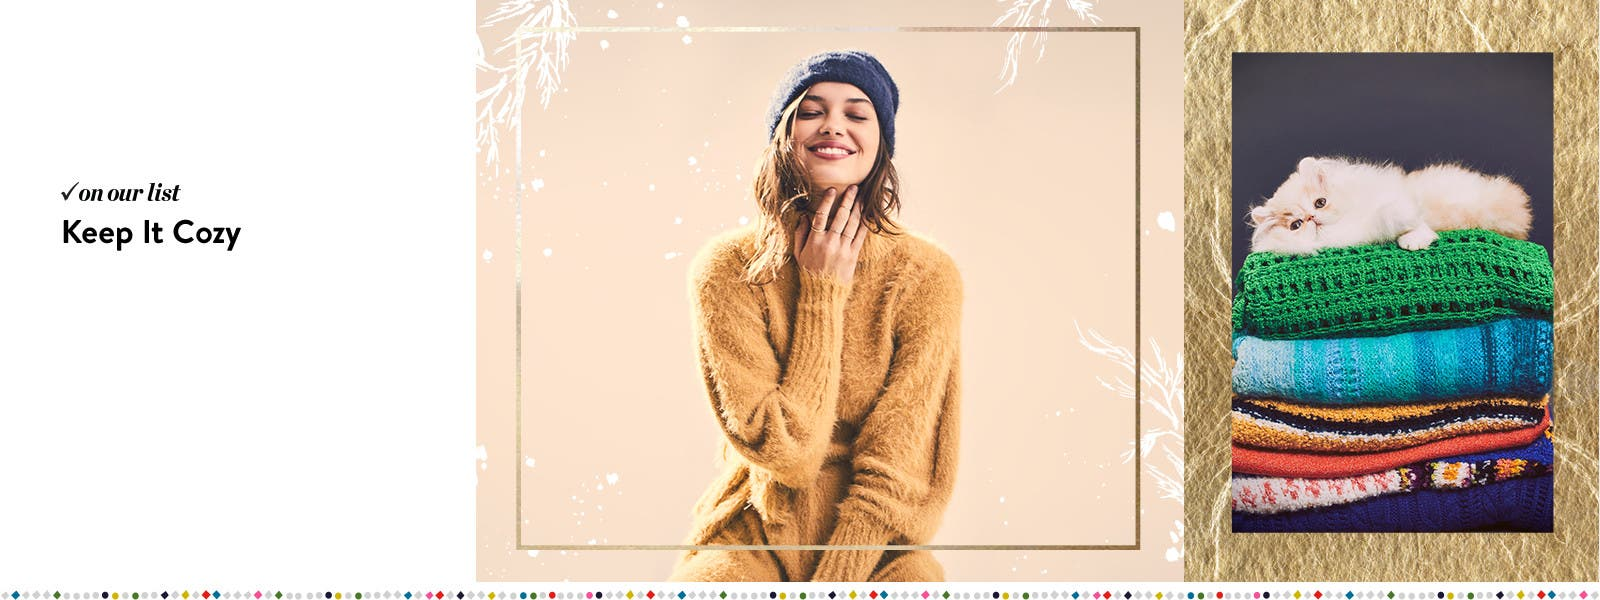 free people womens clothing nordstrom isabella valentine free